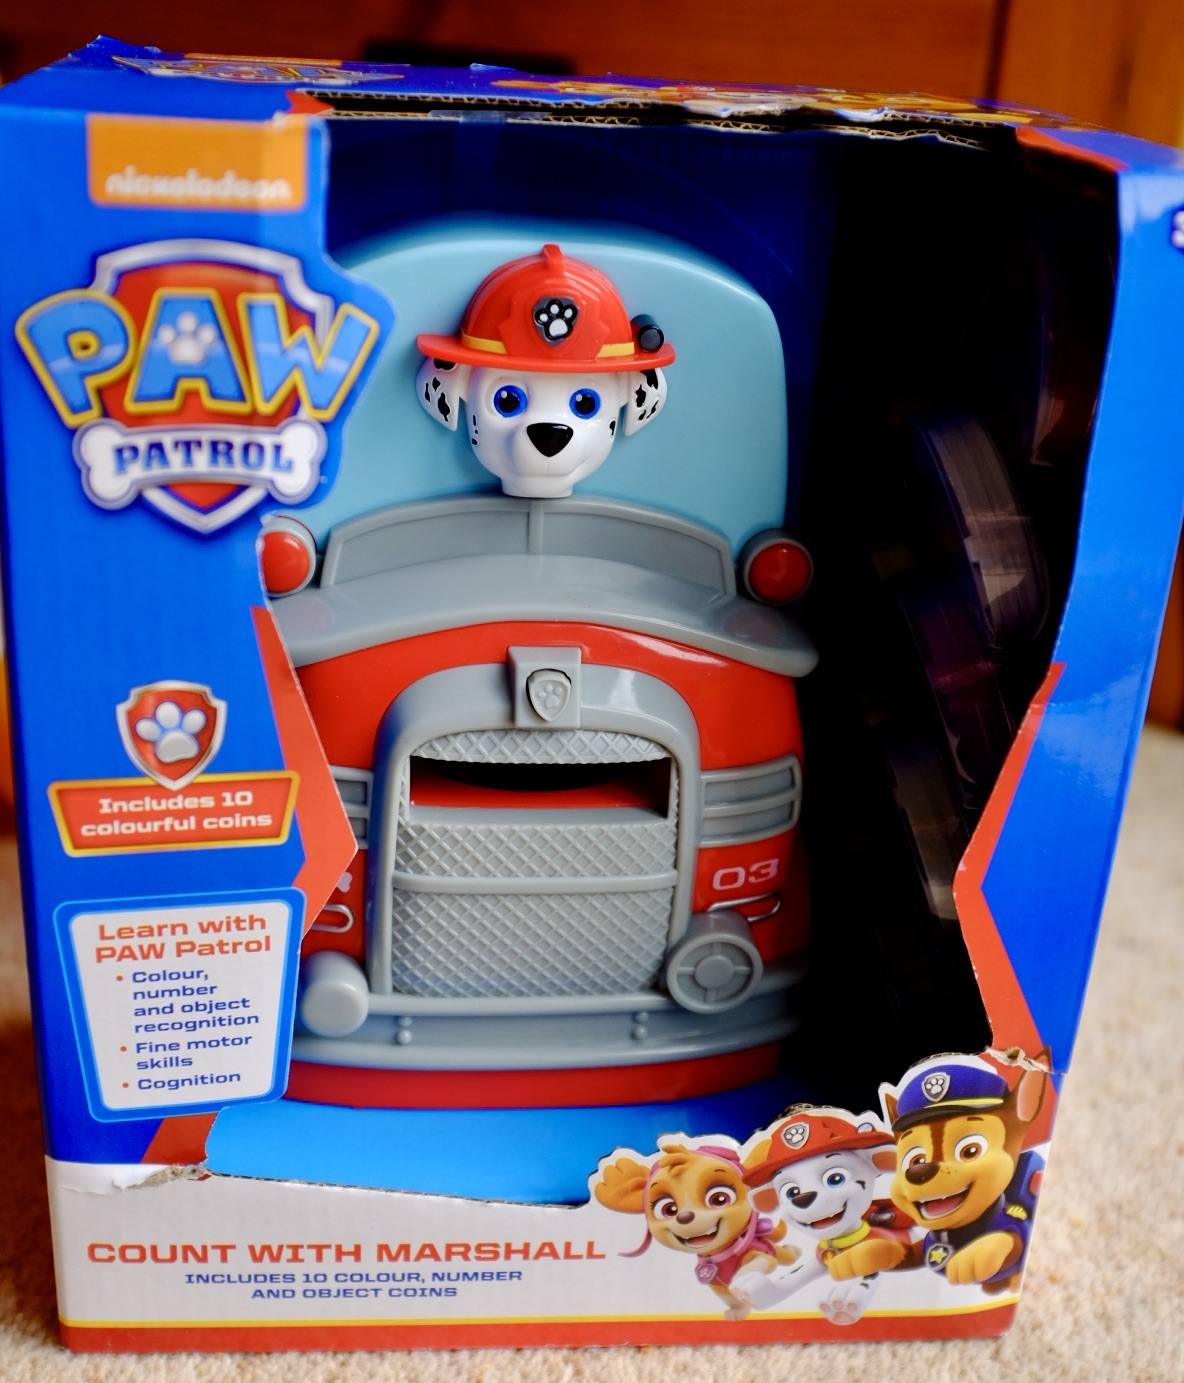 Paw Patrol Count with Marshall in the box